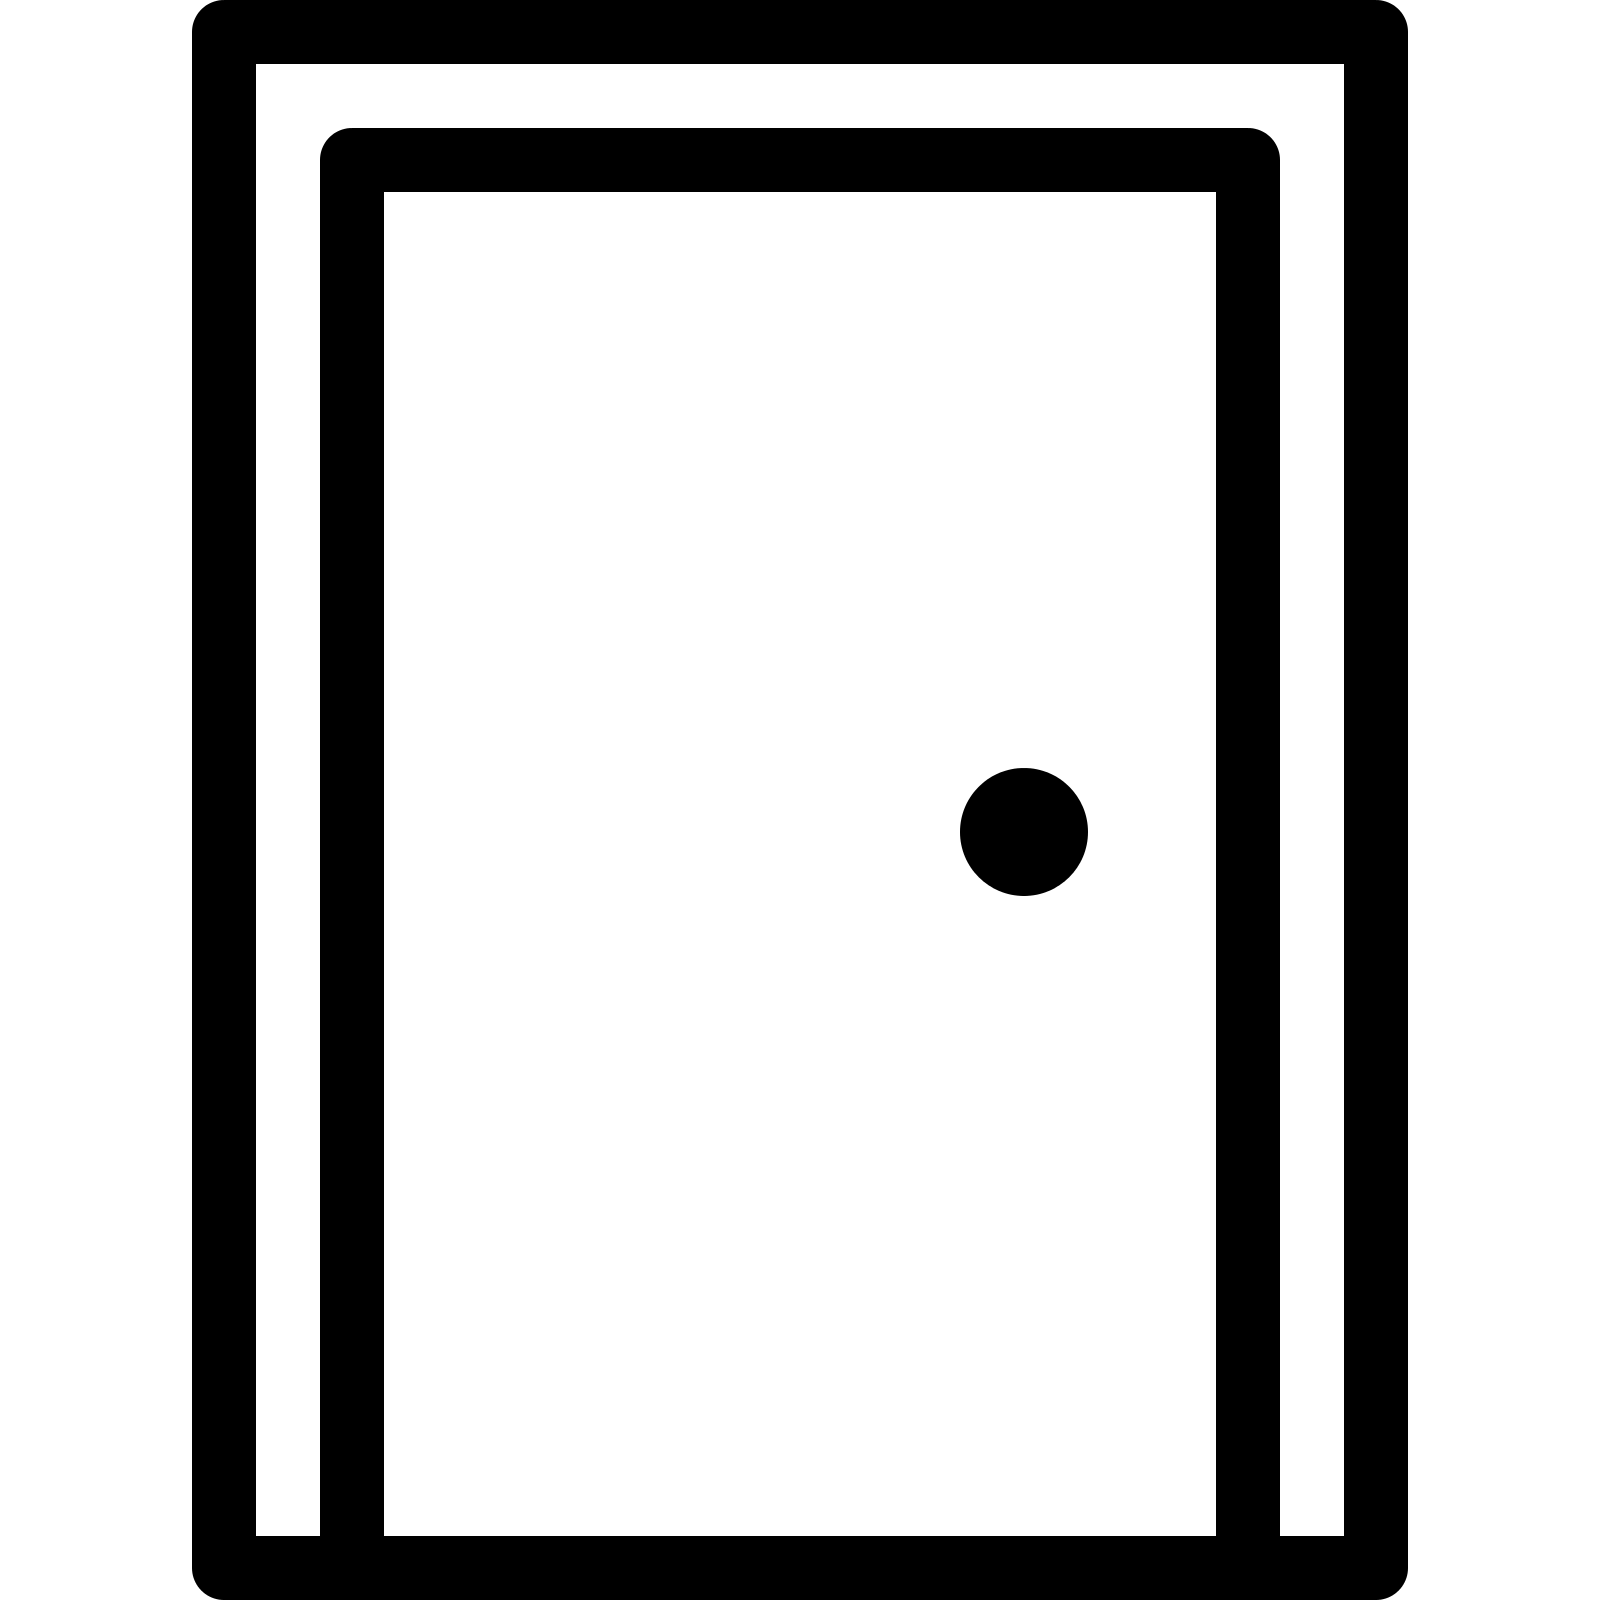 Door clipart rectangle shape The shape like Download Inside